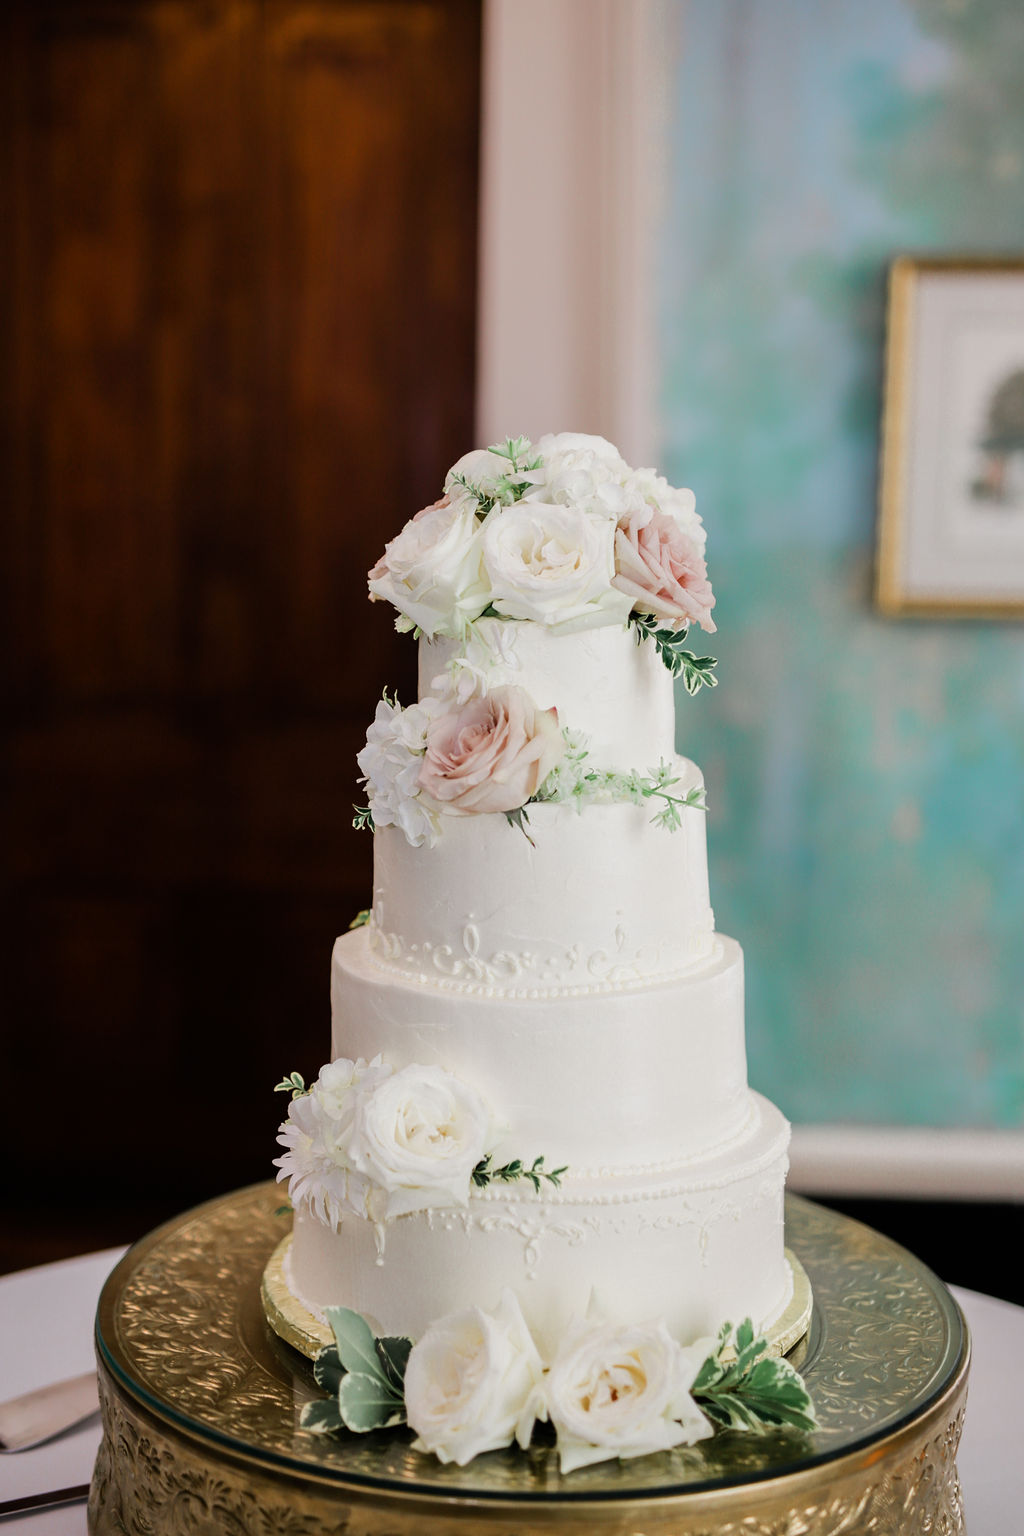 Pink and white wedding cake with flowers: Wedding portrait by Nashville wedding photographer Maria Gloer Photography